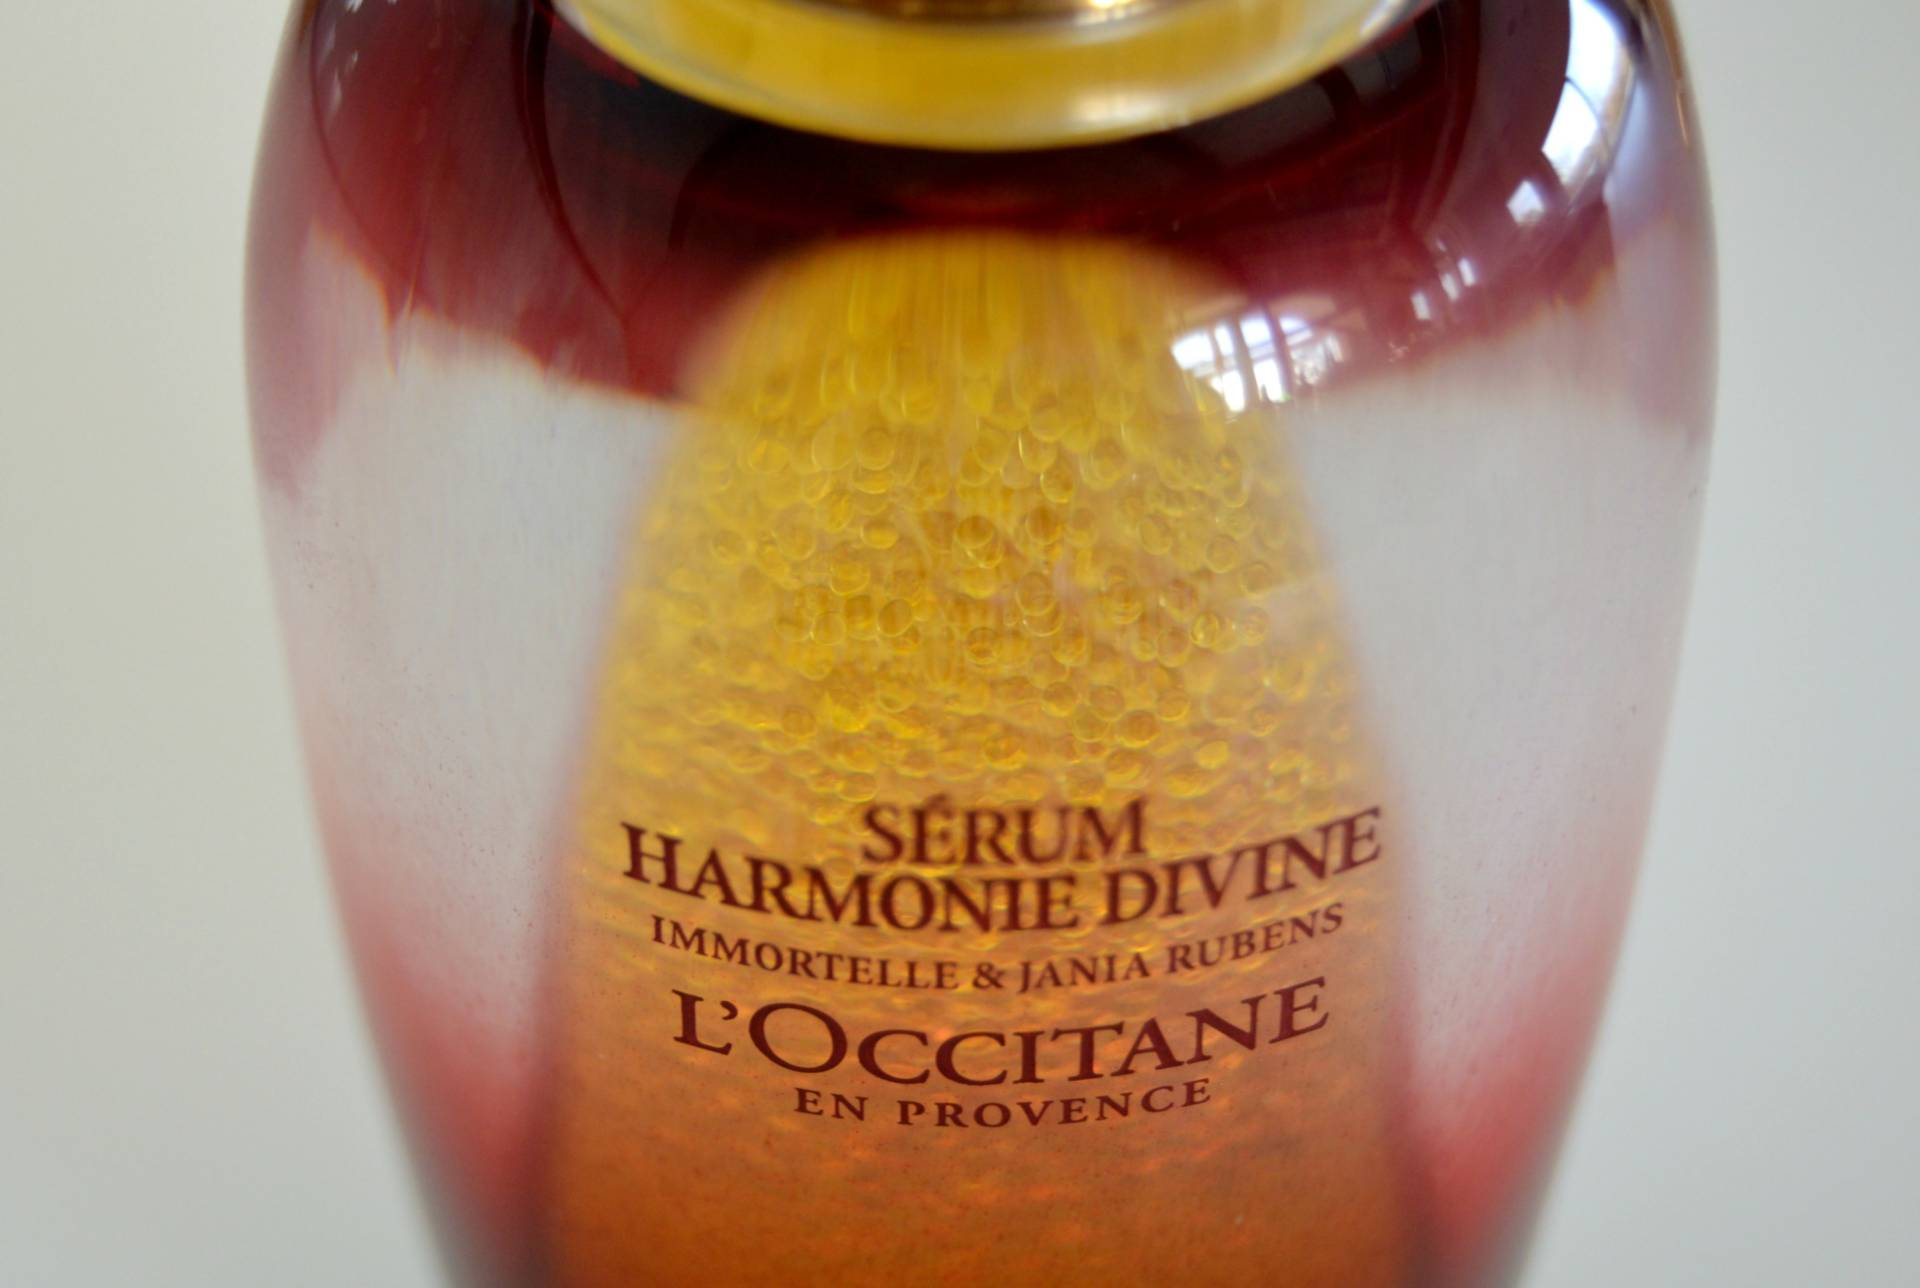 loccitane-harmonie-divine-serum-encapsulated-oil-review-inhautepursuit